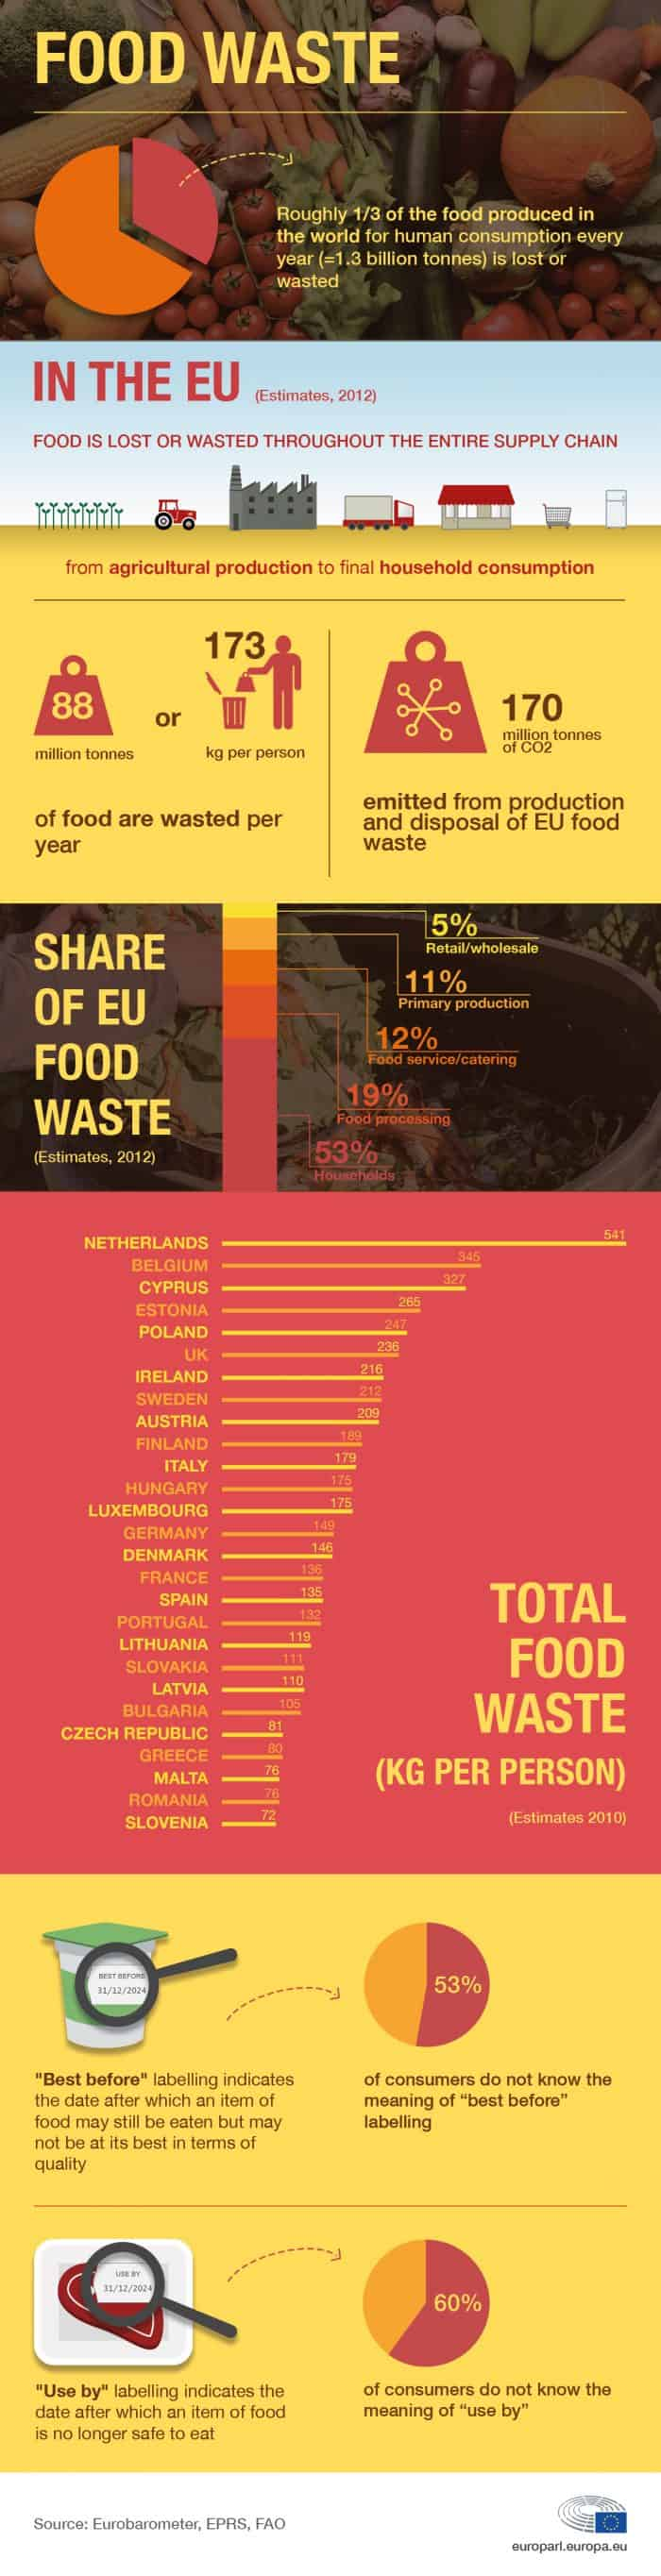 Infographic showing the results of research done on the food waste in the EU